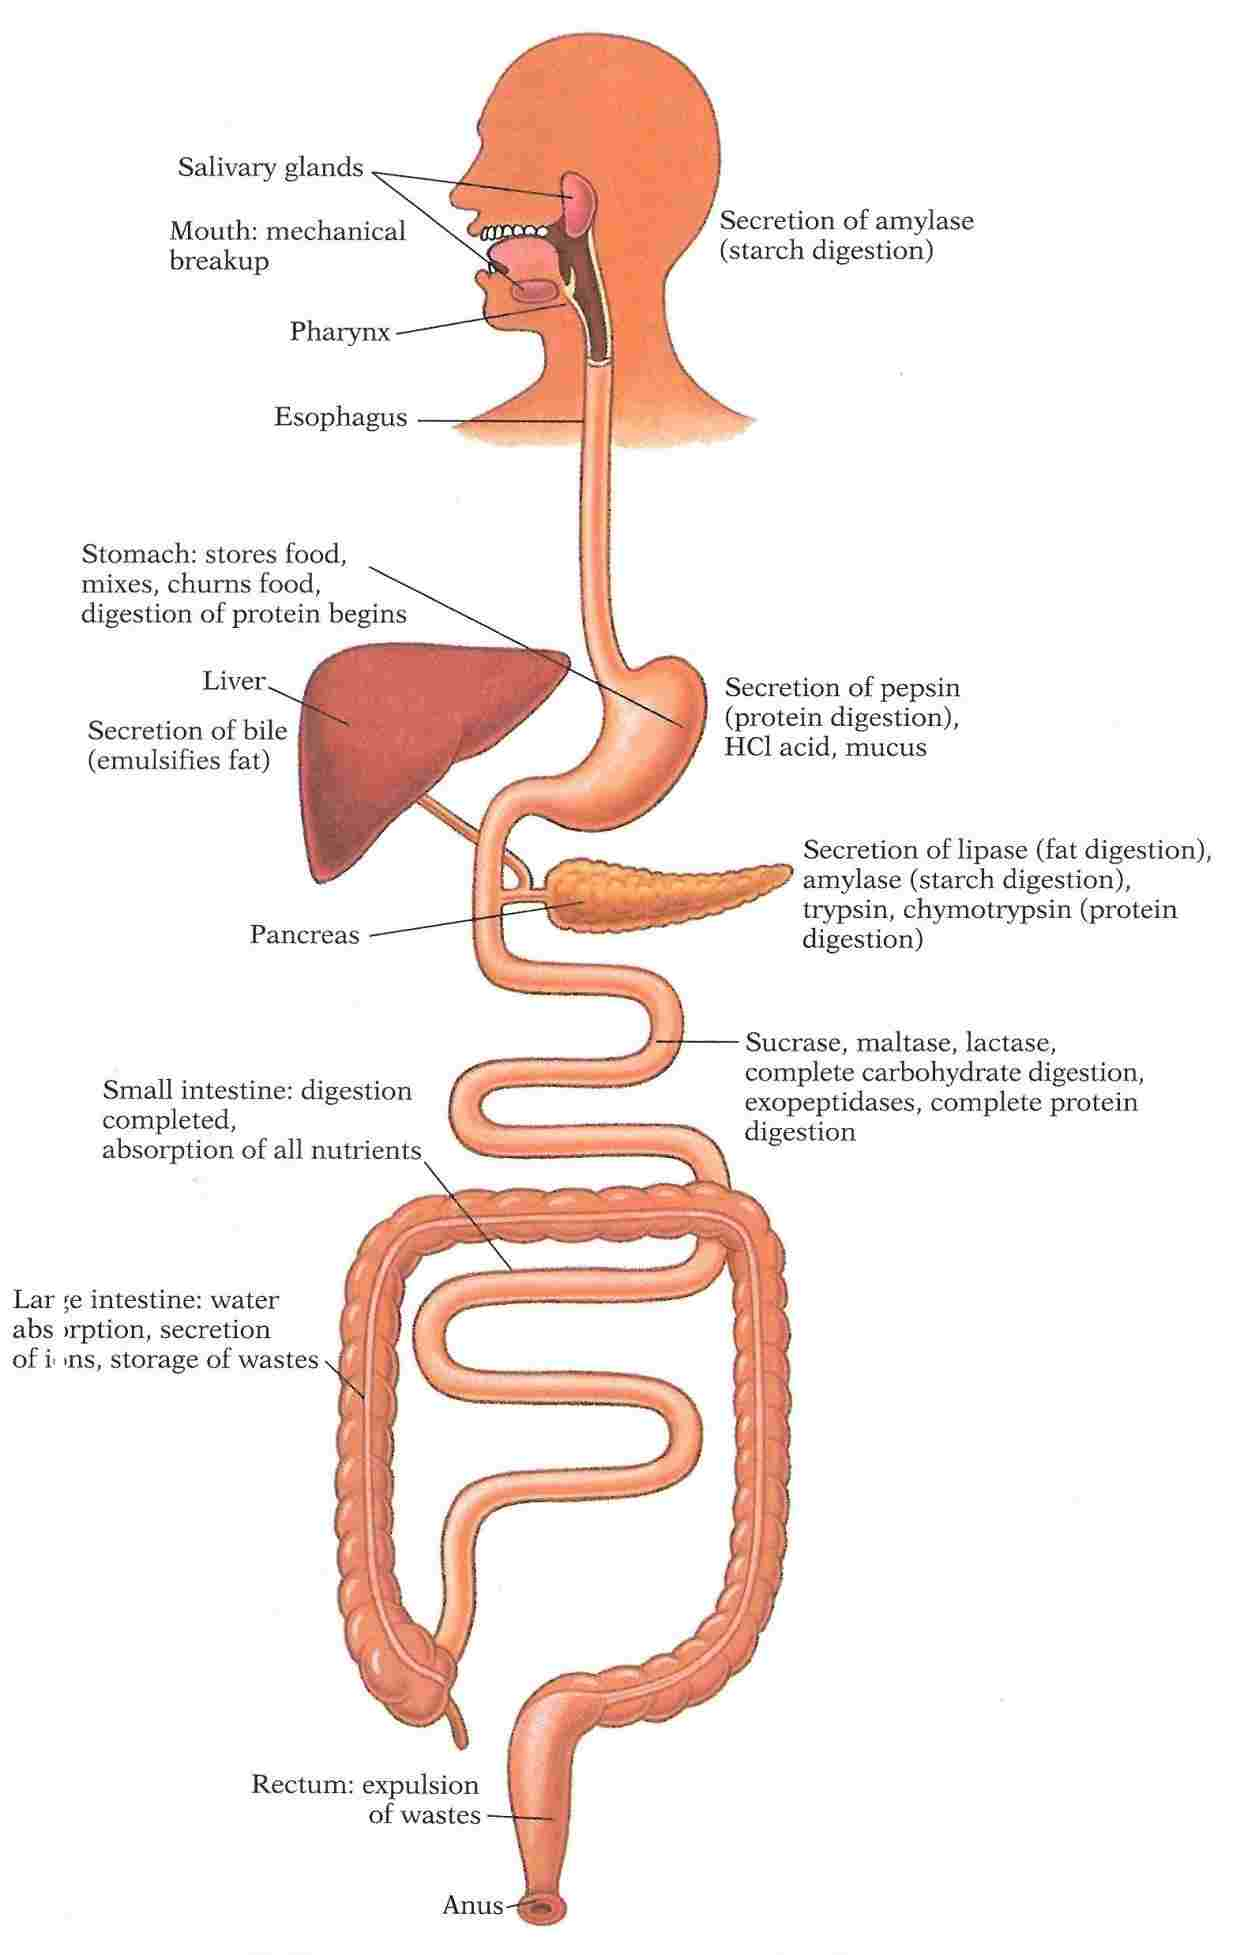 Diagram Of Digestive System Diagram Of Digestive System Of Man Diagram Of Anatomy